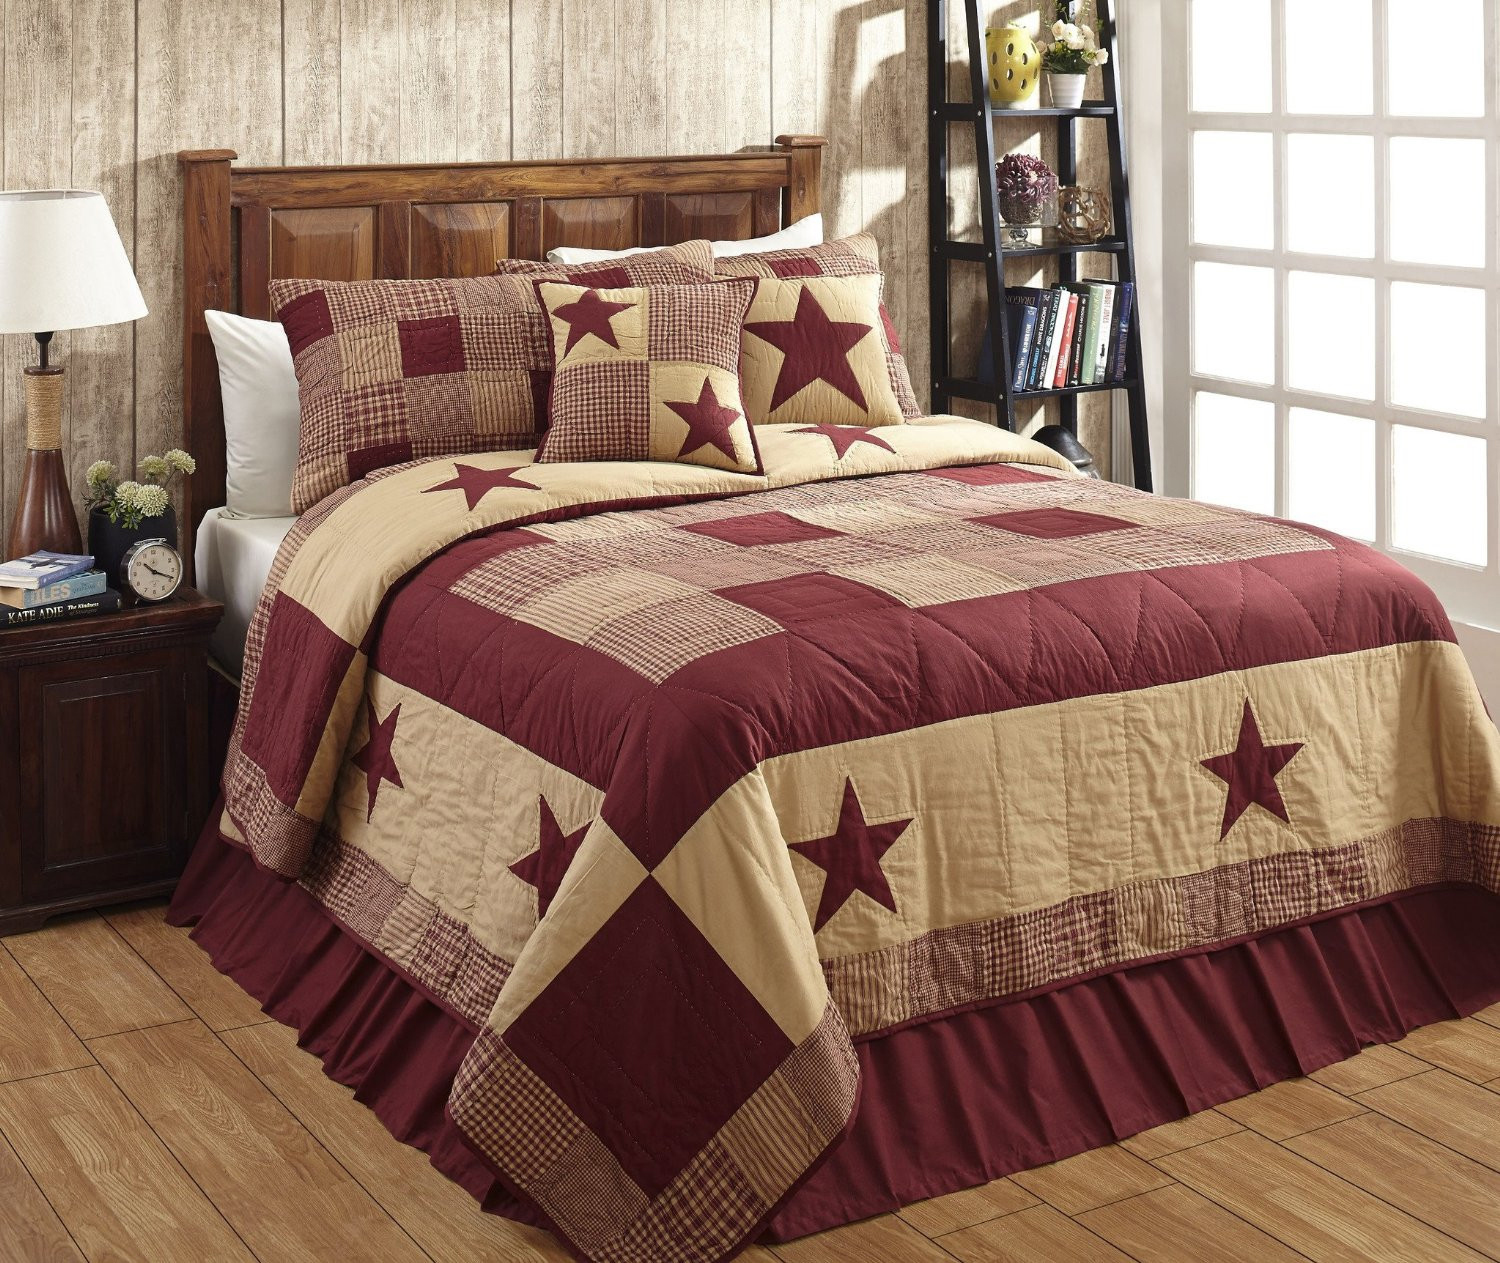 sham quilts clearance c cora with enterprises style f standard bed bedding ease